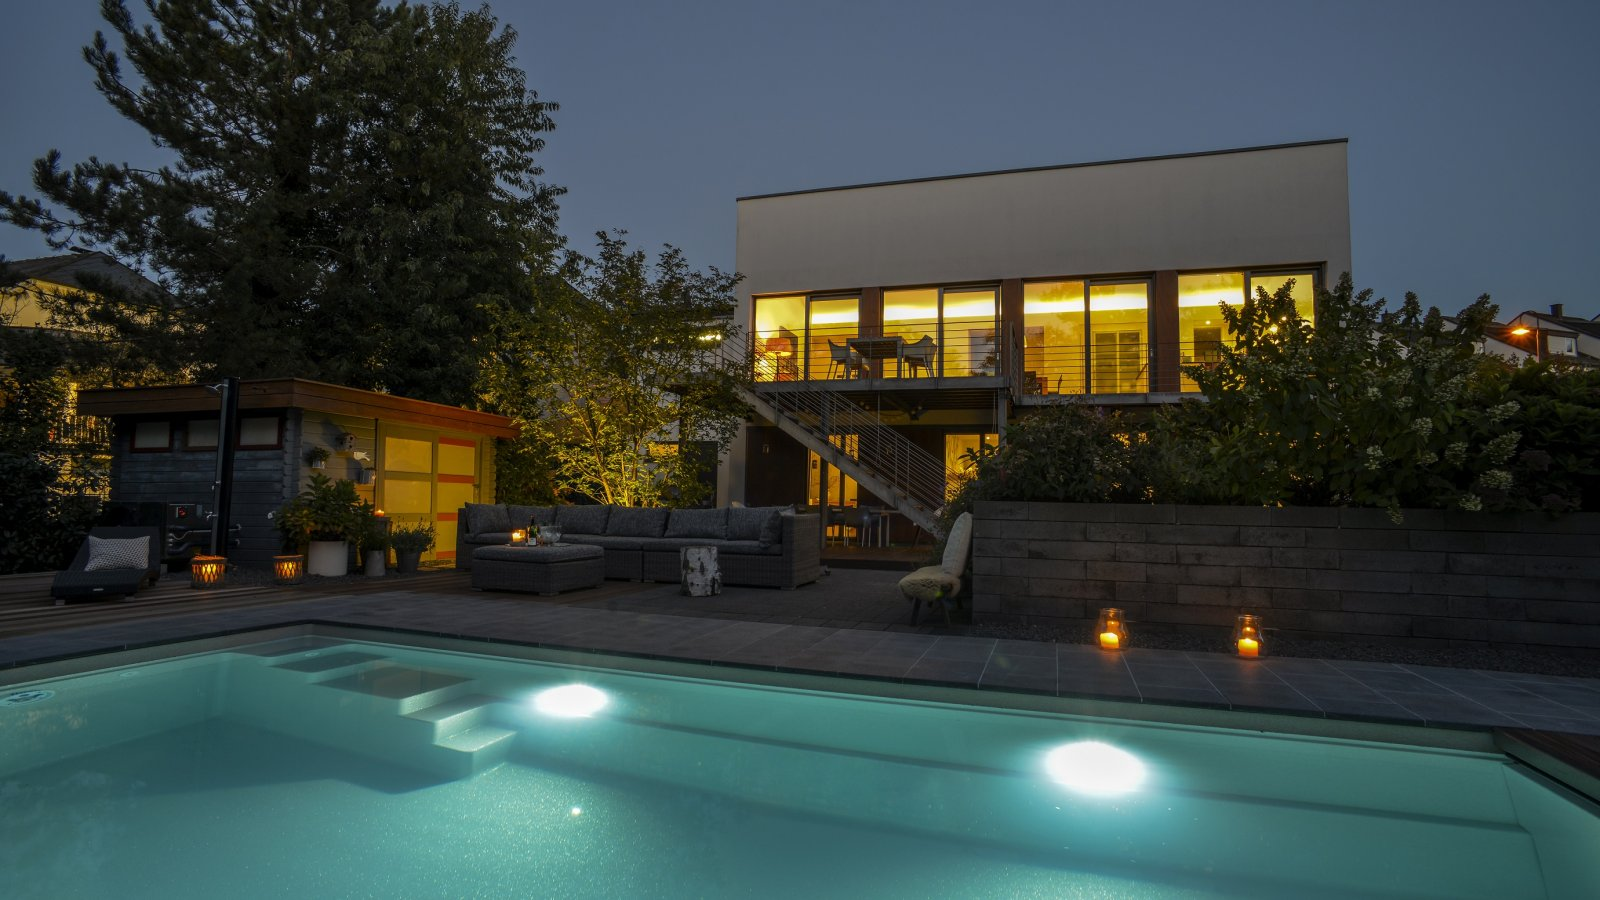 Compass Carbon Ceramic Pool Max 83 in Trier Baltes Swim, Spa & Home GmbH Trier Luxembourg